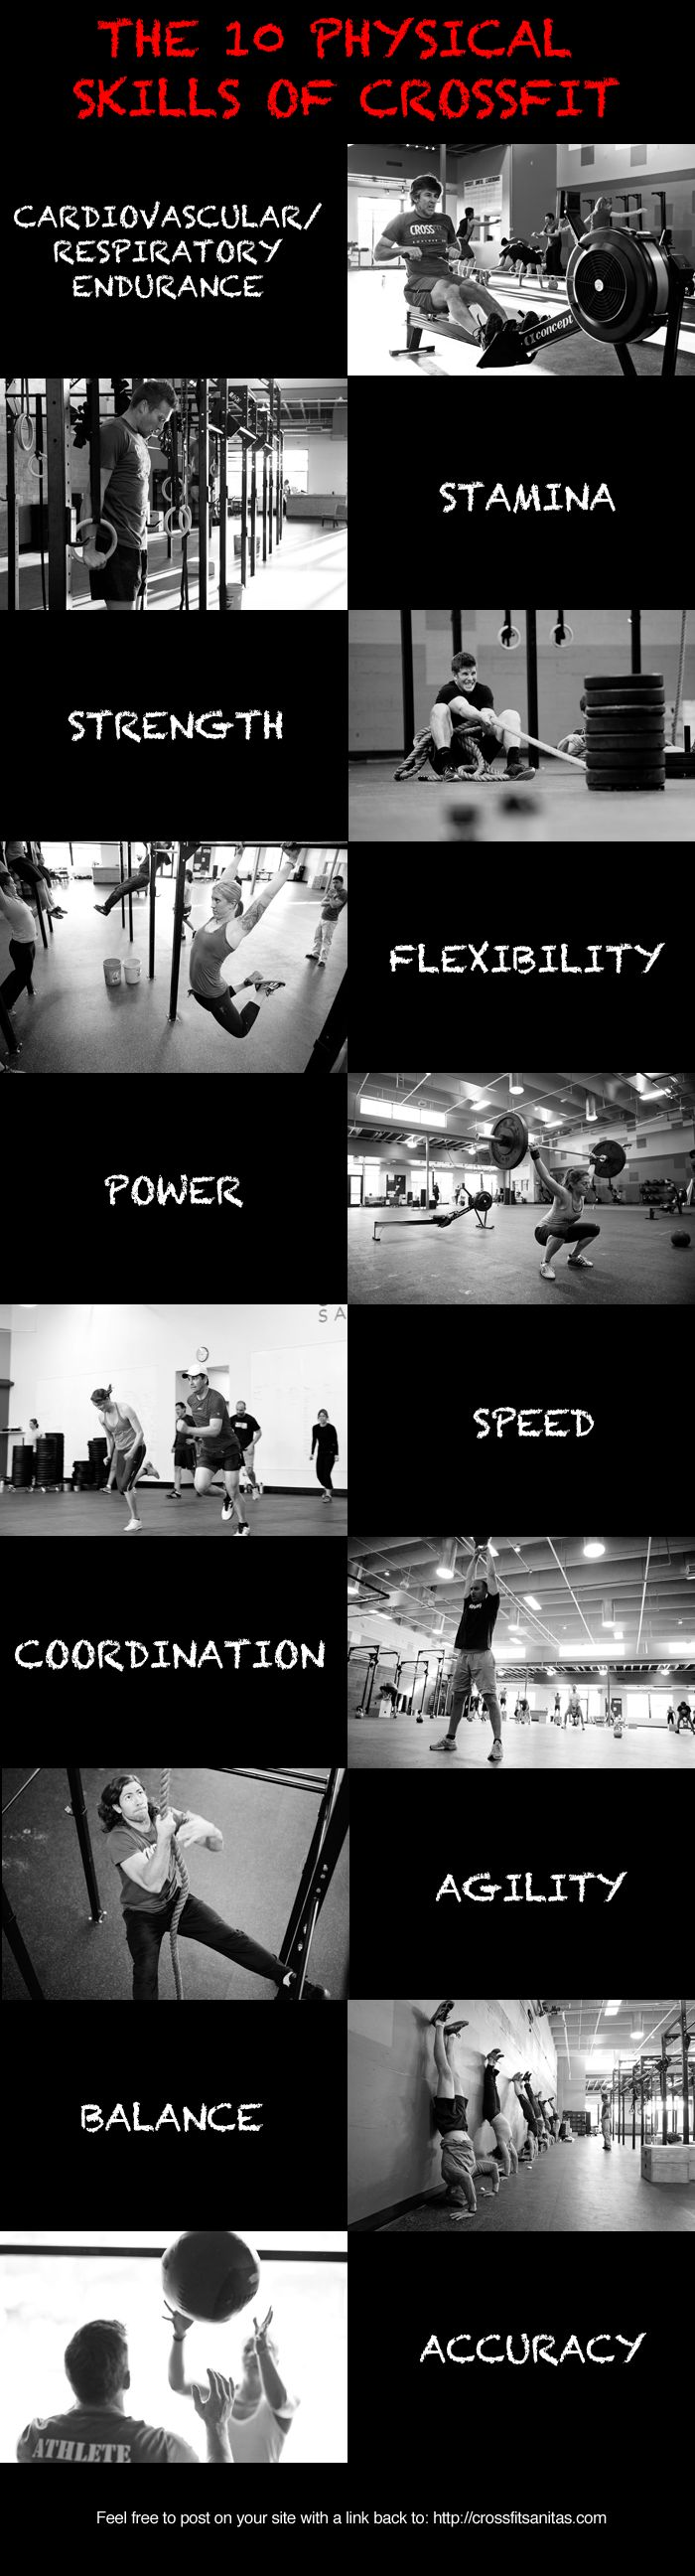 CrossFit is designed to develop 10 general physical skills. They are: Cardiovascular/respiratory endurance - The ability of body systems to gather, process, and deliver oxygen. Stamina - The ability of body systems to process, deliver, store, and utilize energy. Strength - The ability of a muscular unit, or combination of muscular units, to apply force.…